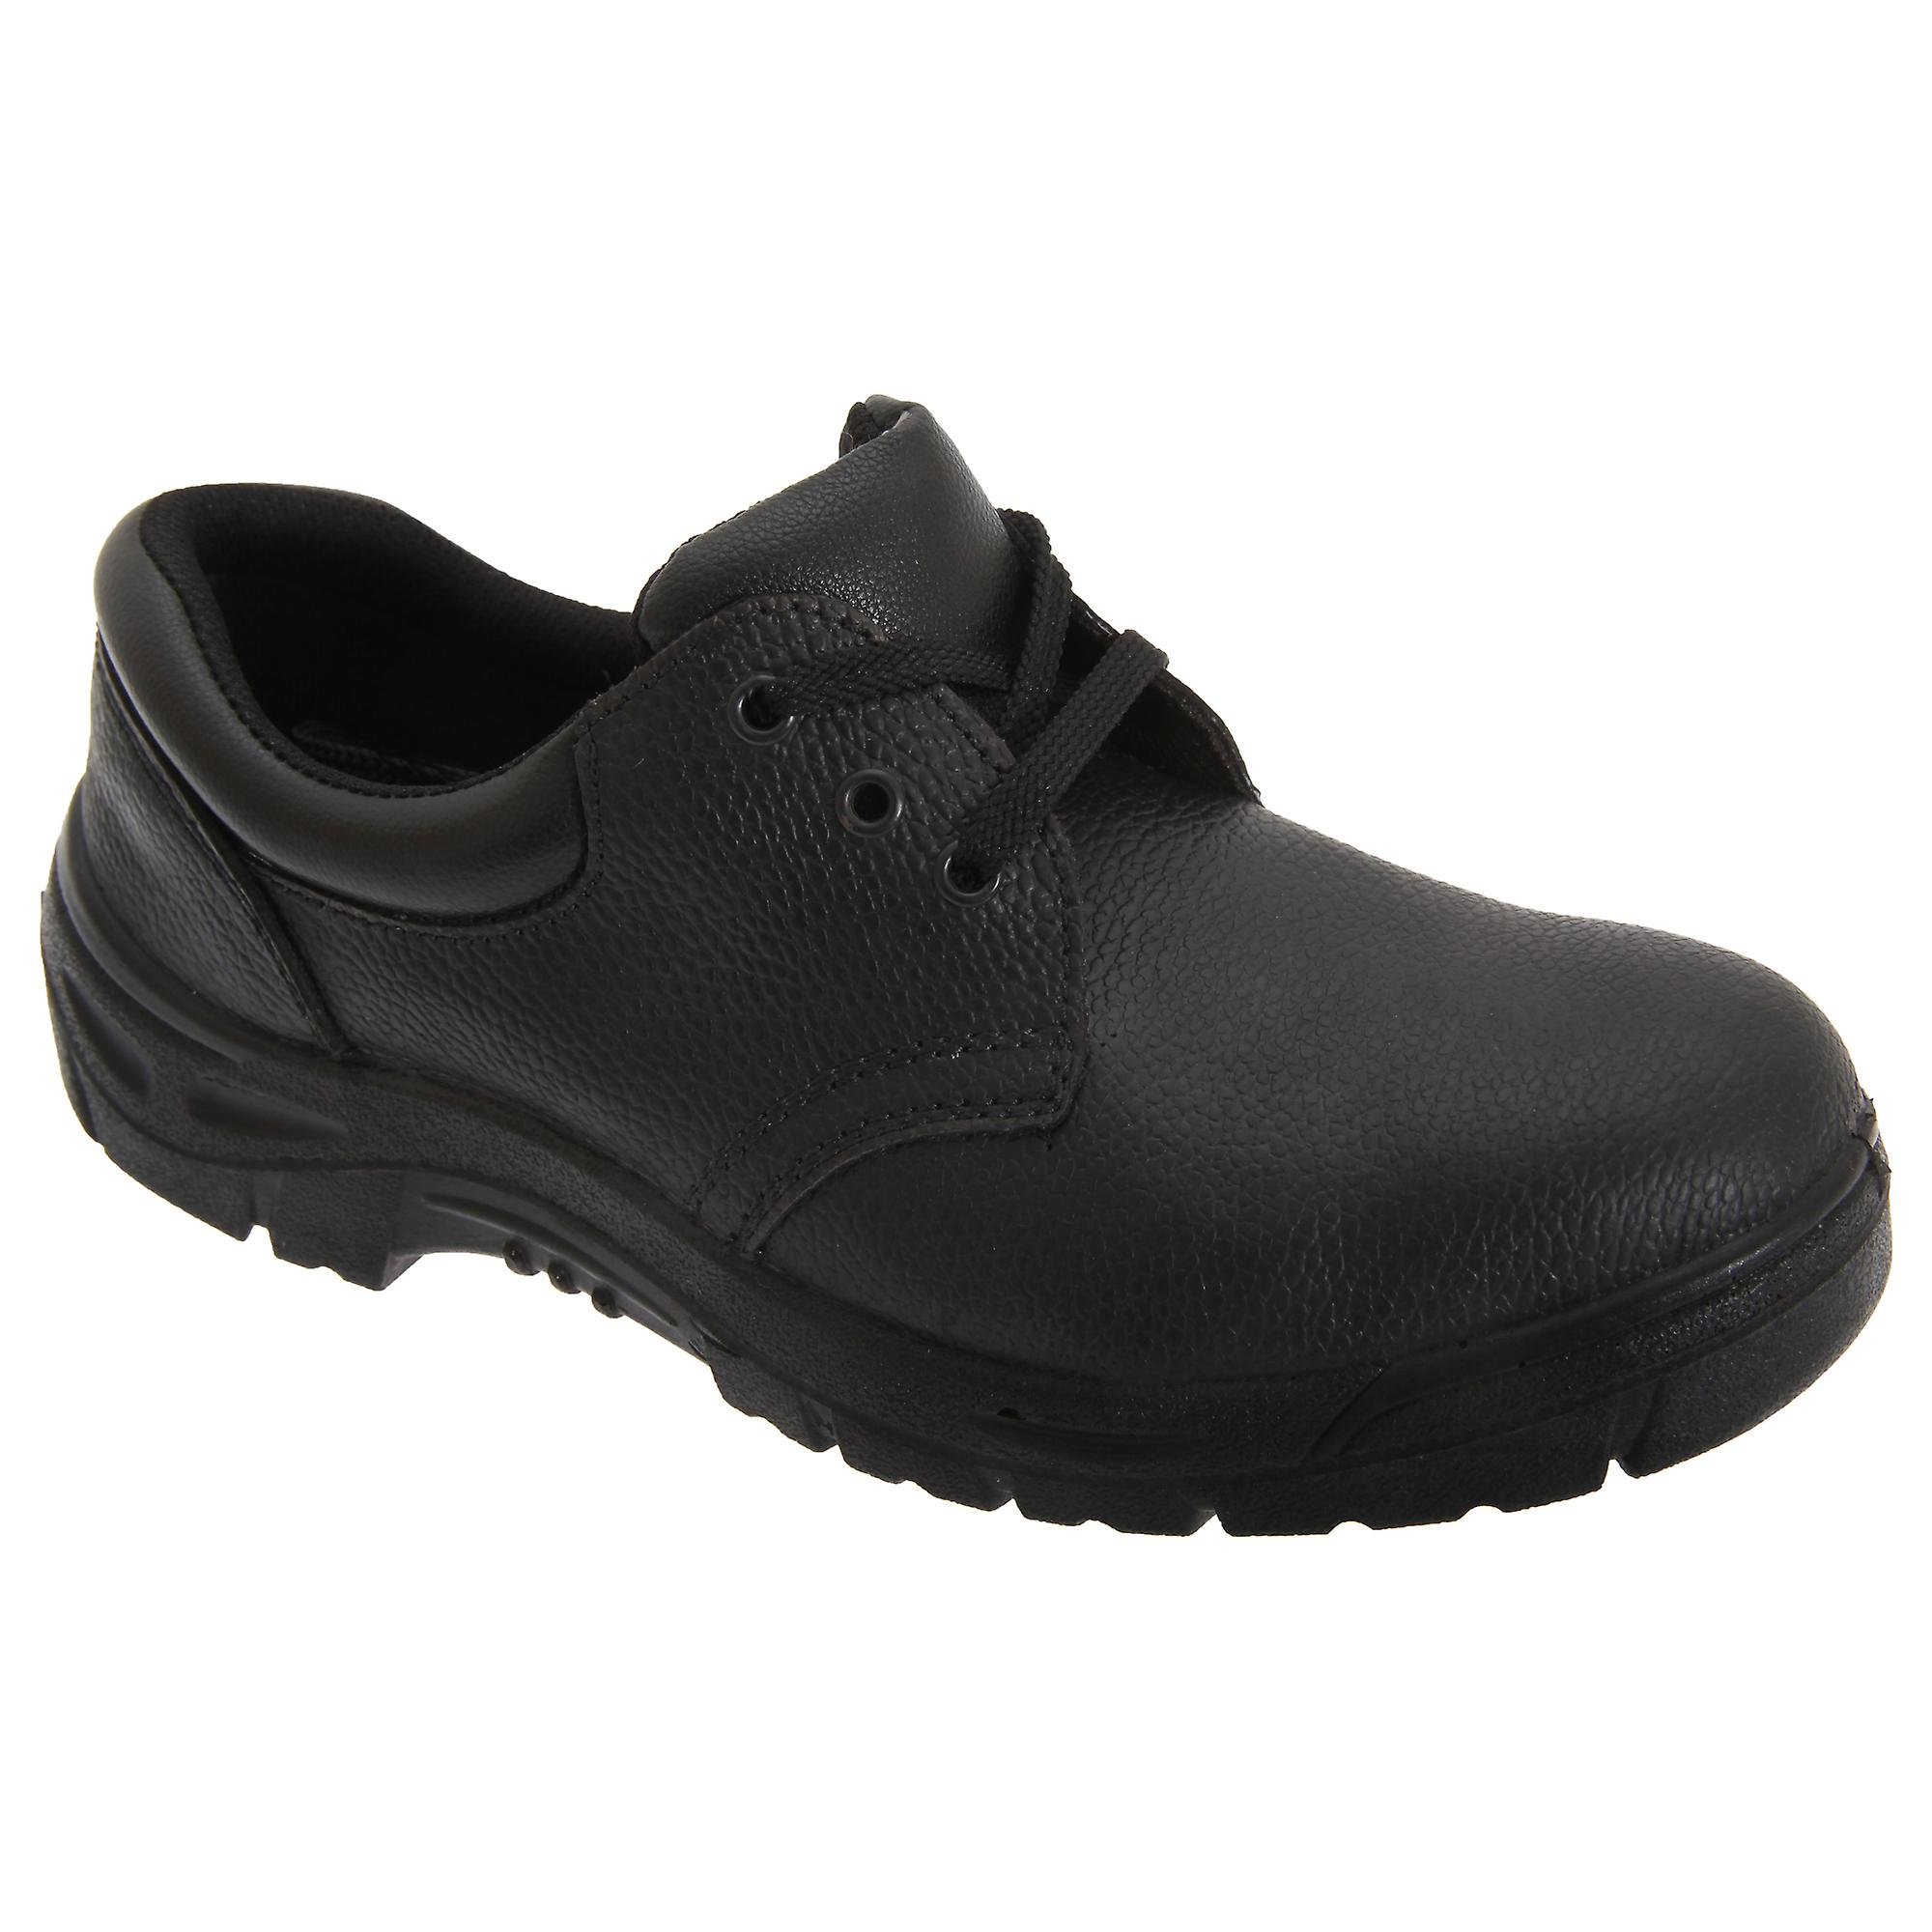 Grafters Leather Mens 3 Eye Grain Leather Grafters Safety Toe Cap Shoes 5b87ce